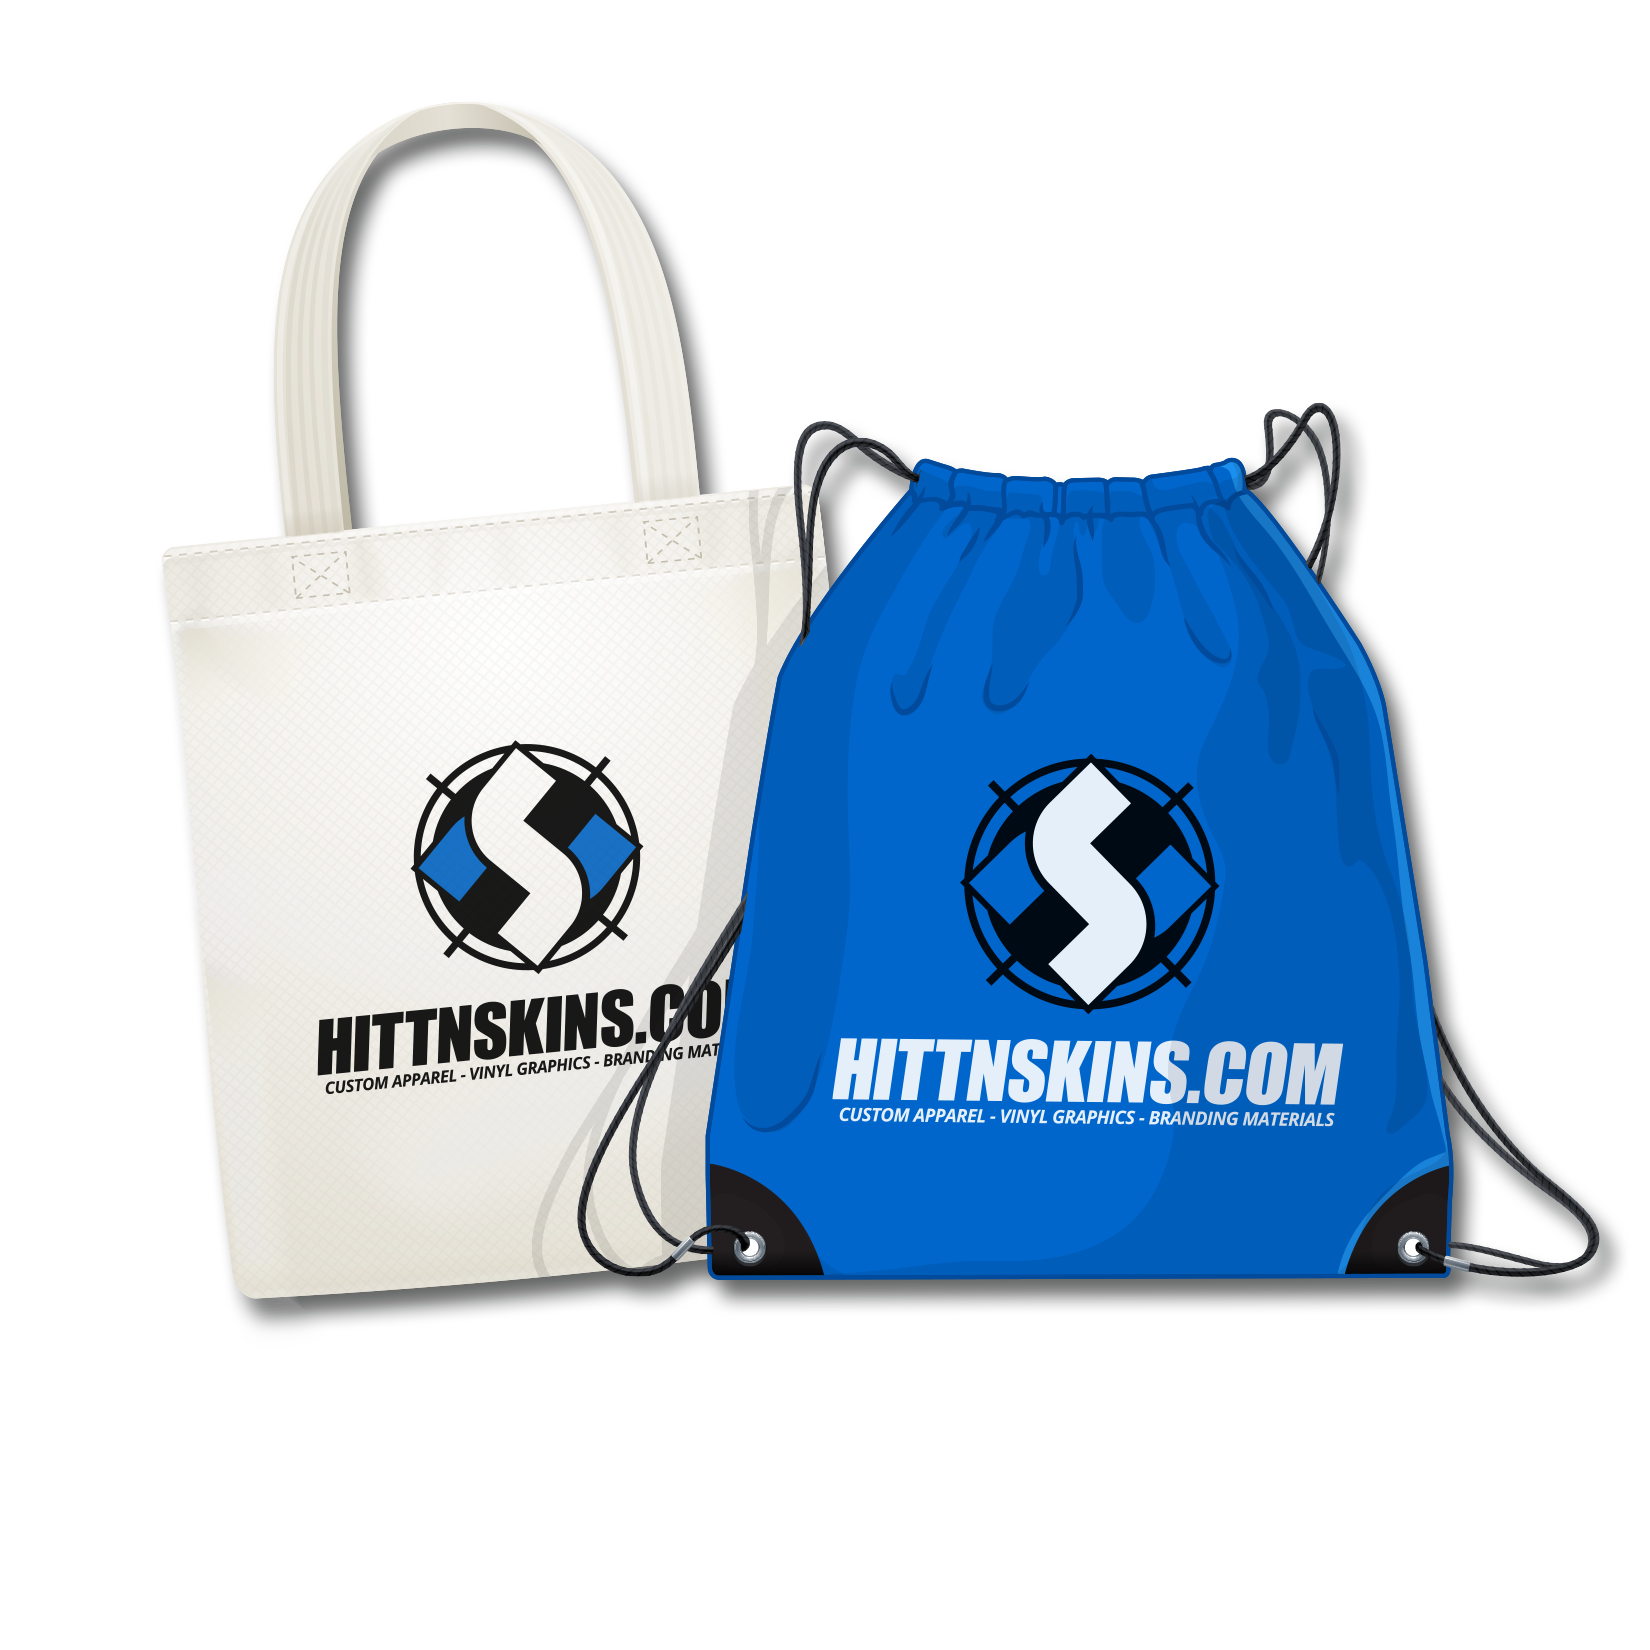 Hittn  Skins - A Custom Promotional Items Printer Located In Orlando 0c98d34c9